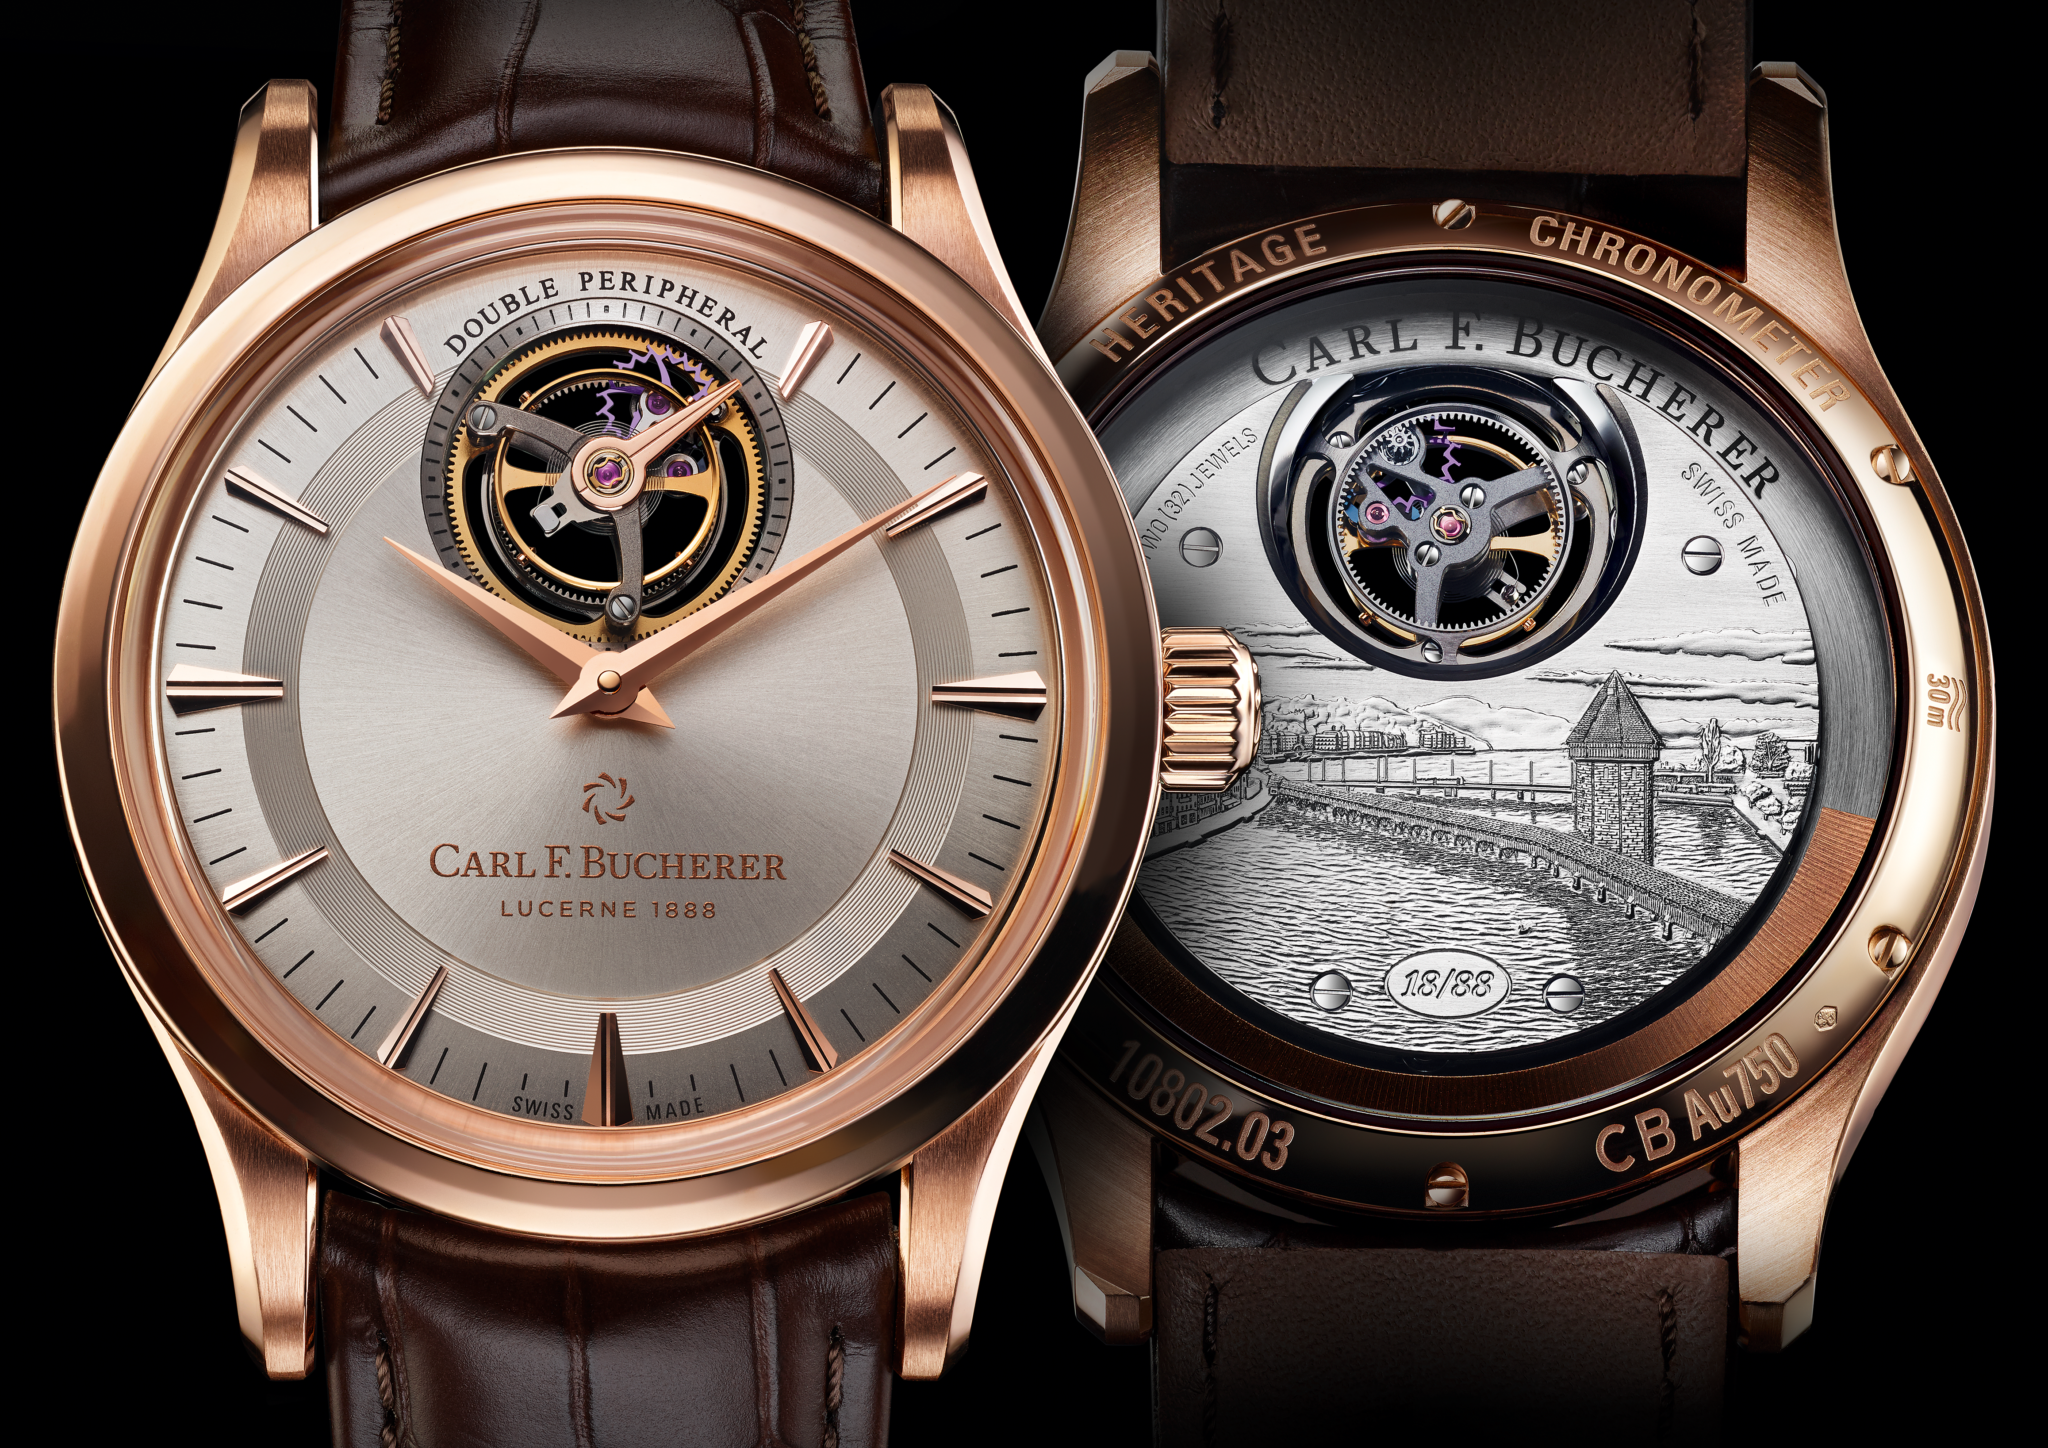 Carl F Bucherer Heritage double peripheral tourbillon